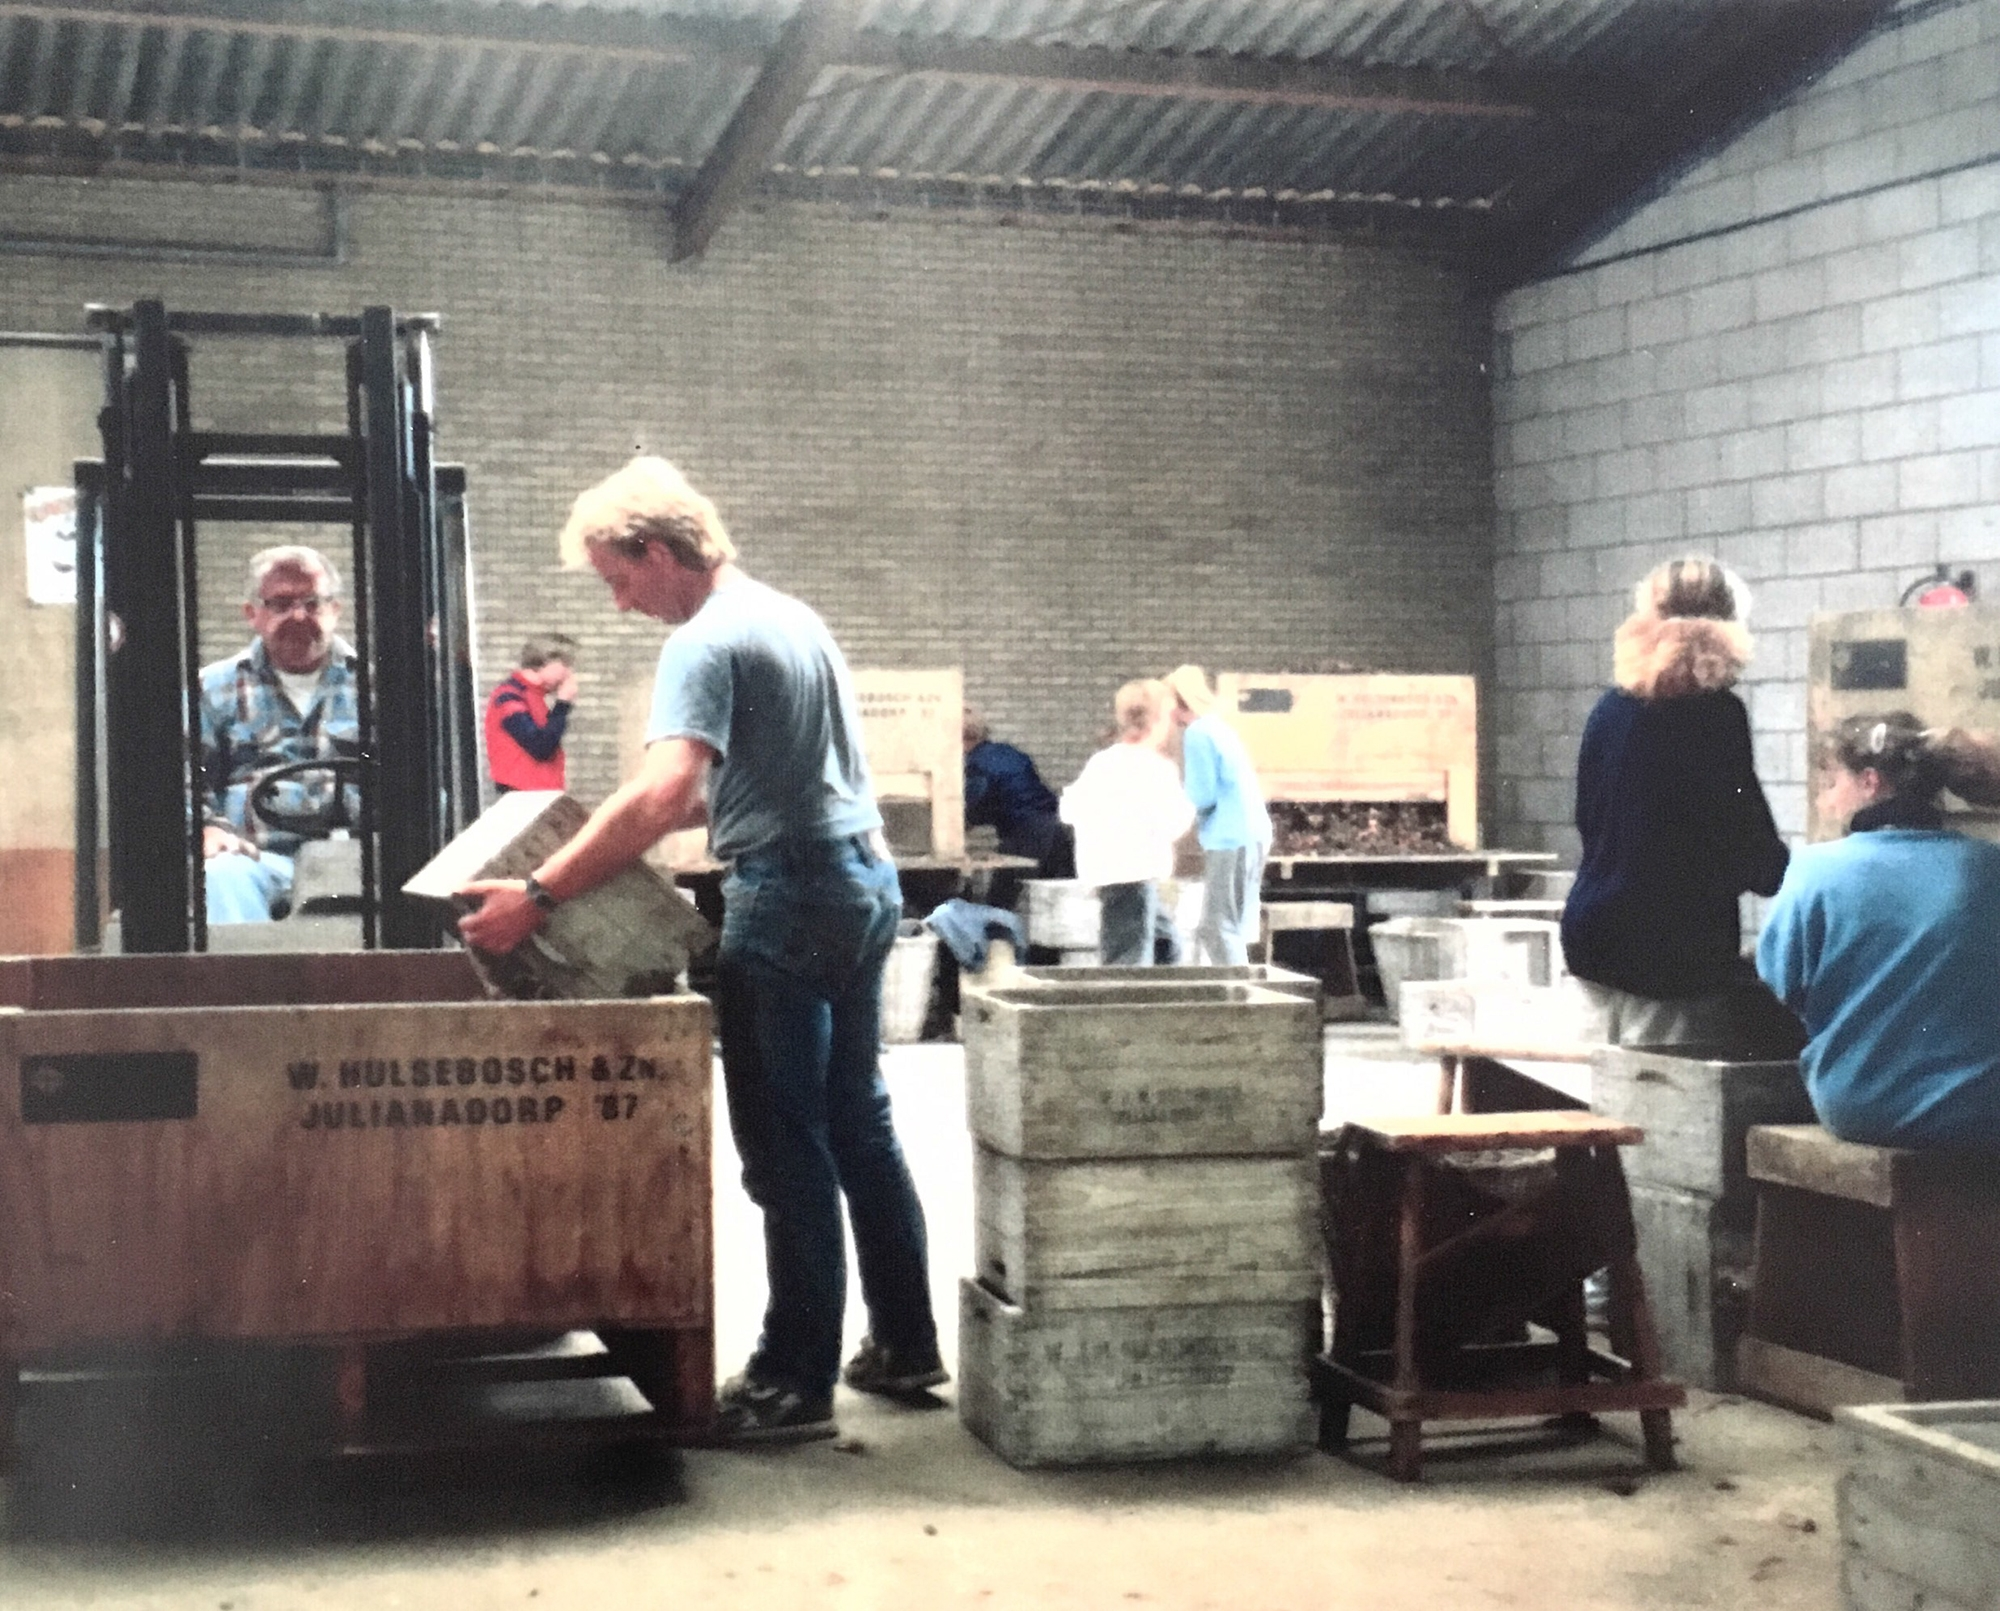 Willem and Debby's father, Steve, on the forklift (1990)